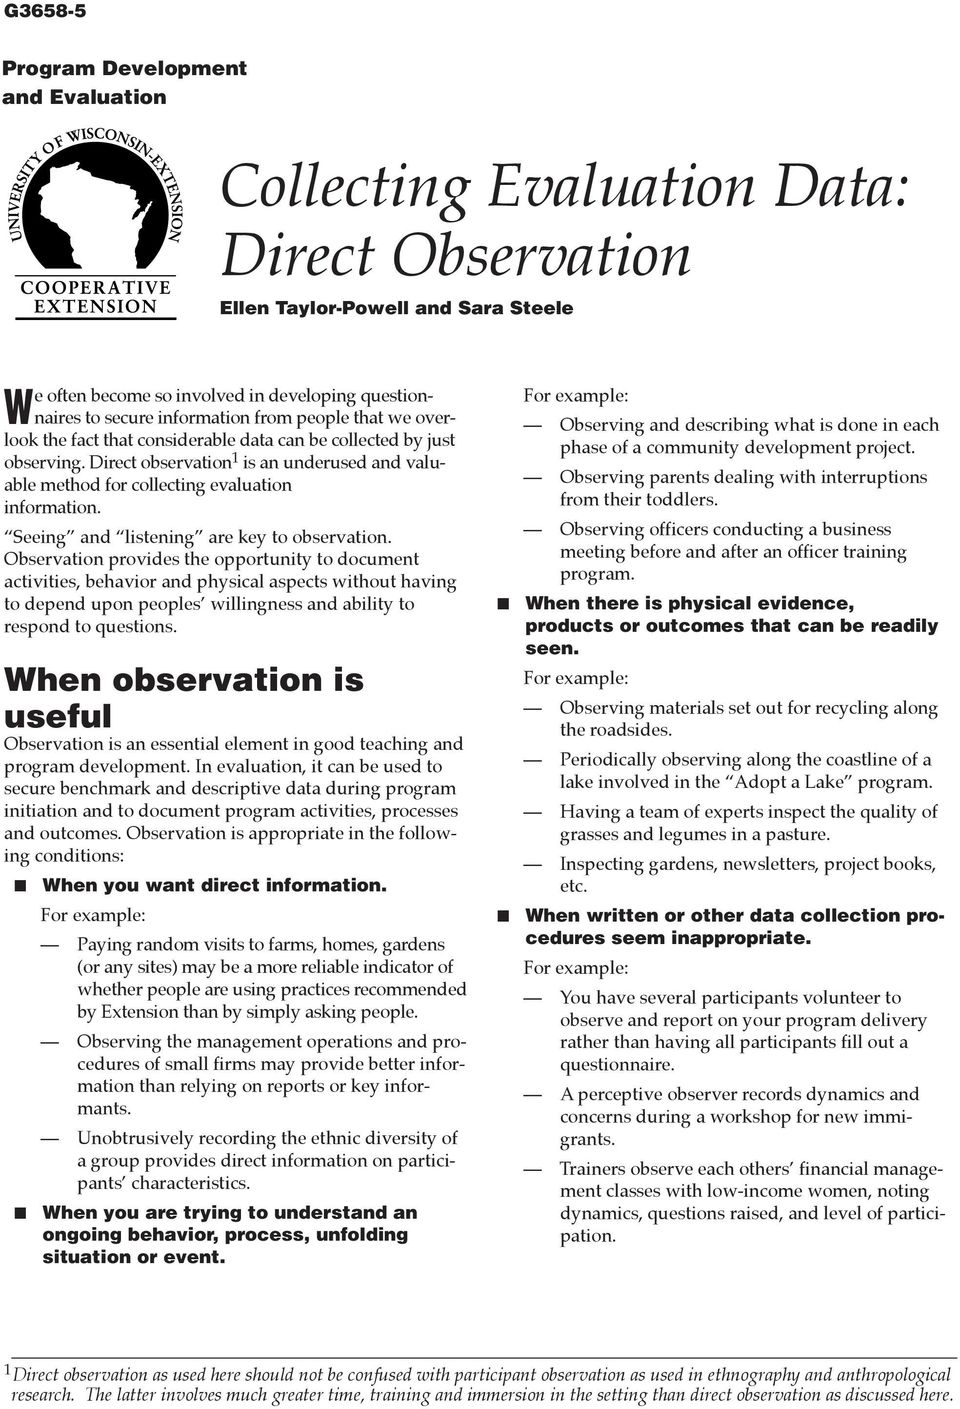 Direct observation 1 is an underused and valuable method for collecting evaluation information. ÒSeeingÓ and ÒlisteningÓ are key to observation.